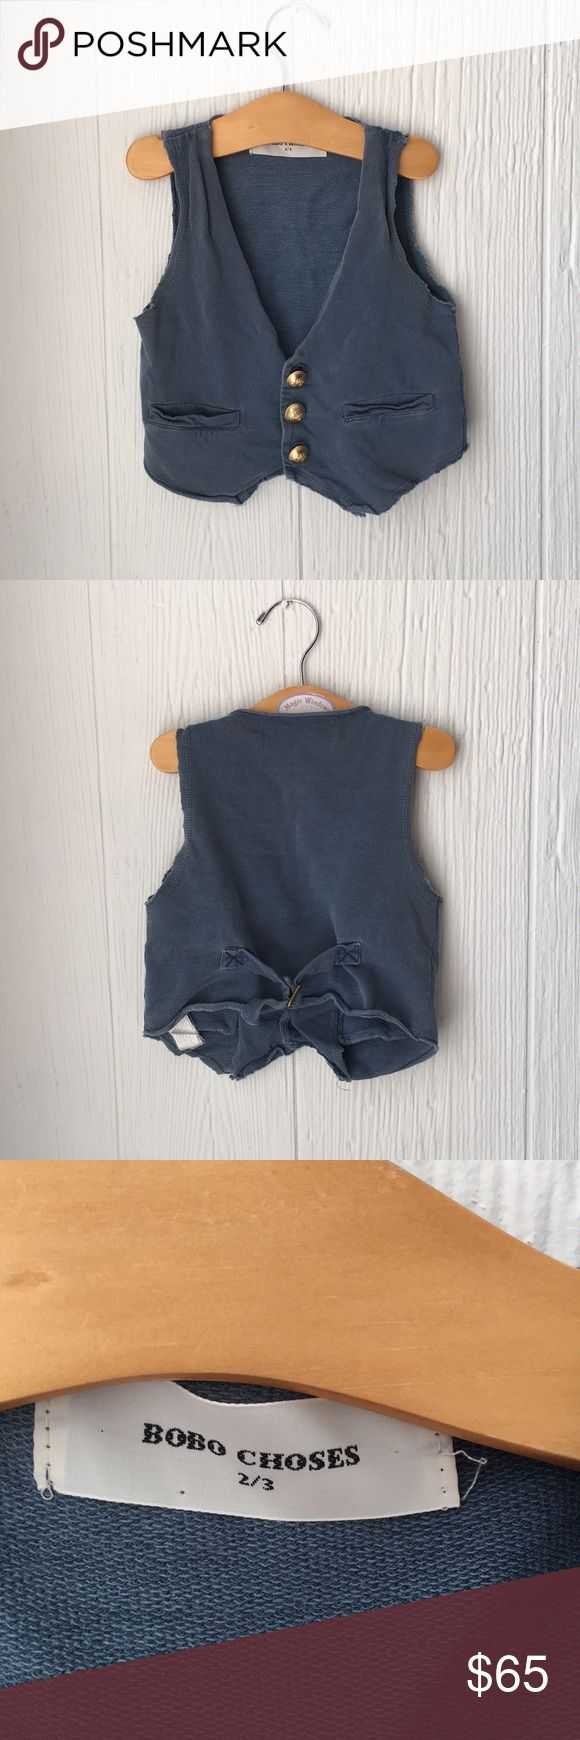 Toddler Boys Vest 2T - 3T Sweet knit vest for little boys. Distressed style with raw edges in a sturdy knit fabric. Bobo Choses Jackets & Coats Vests